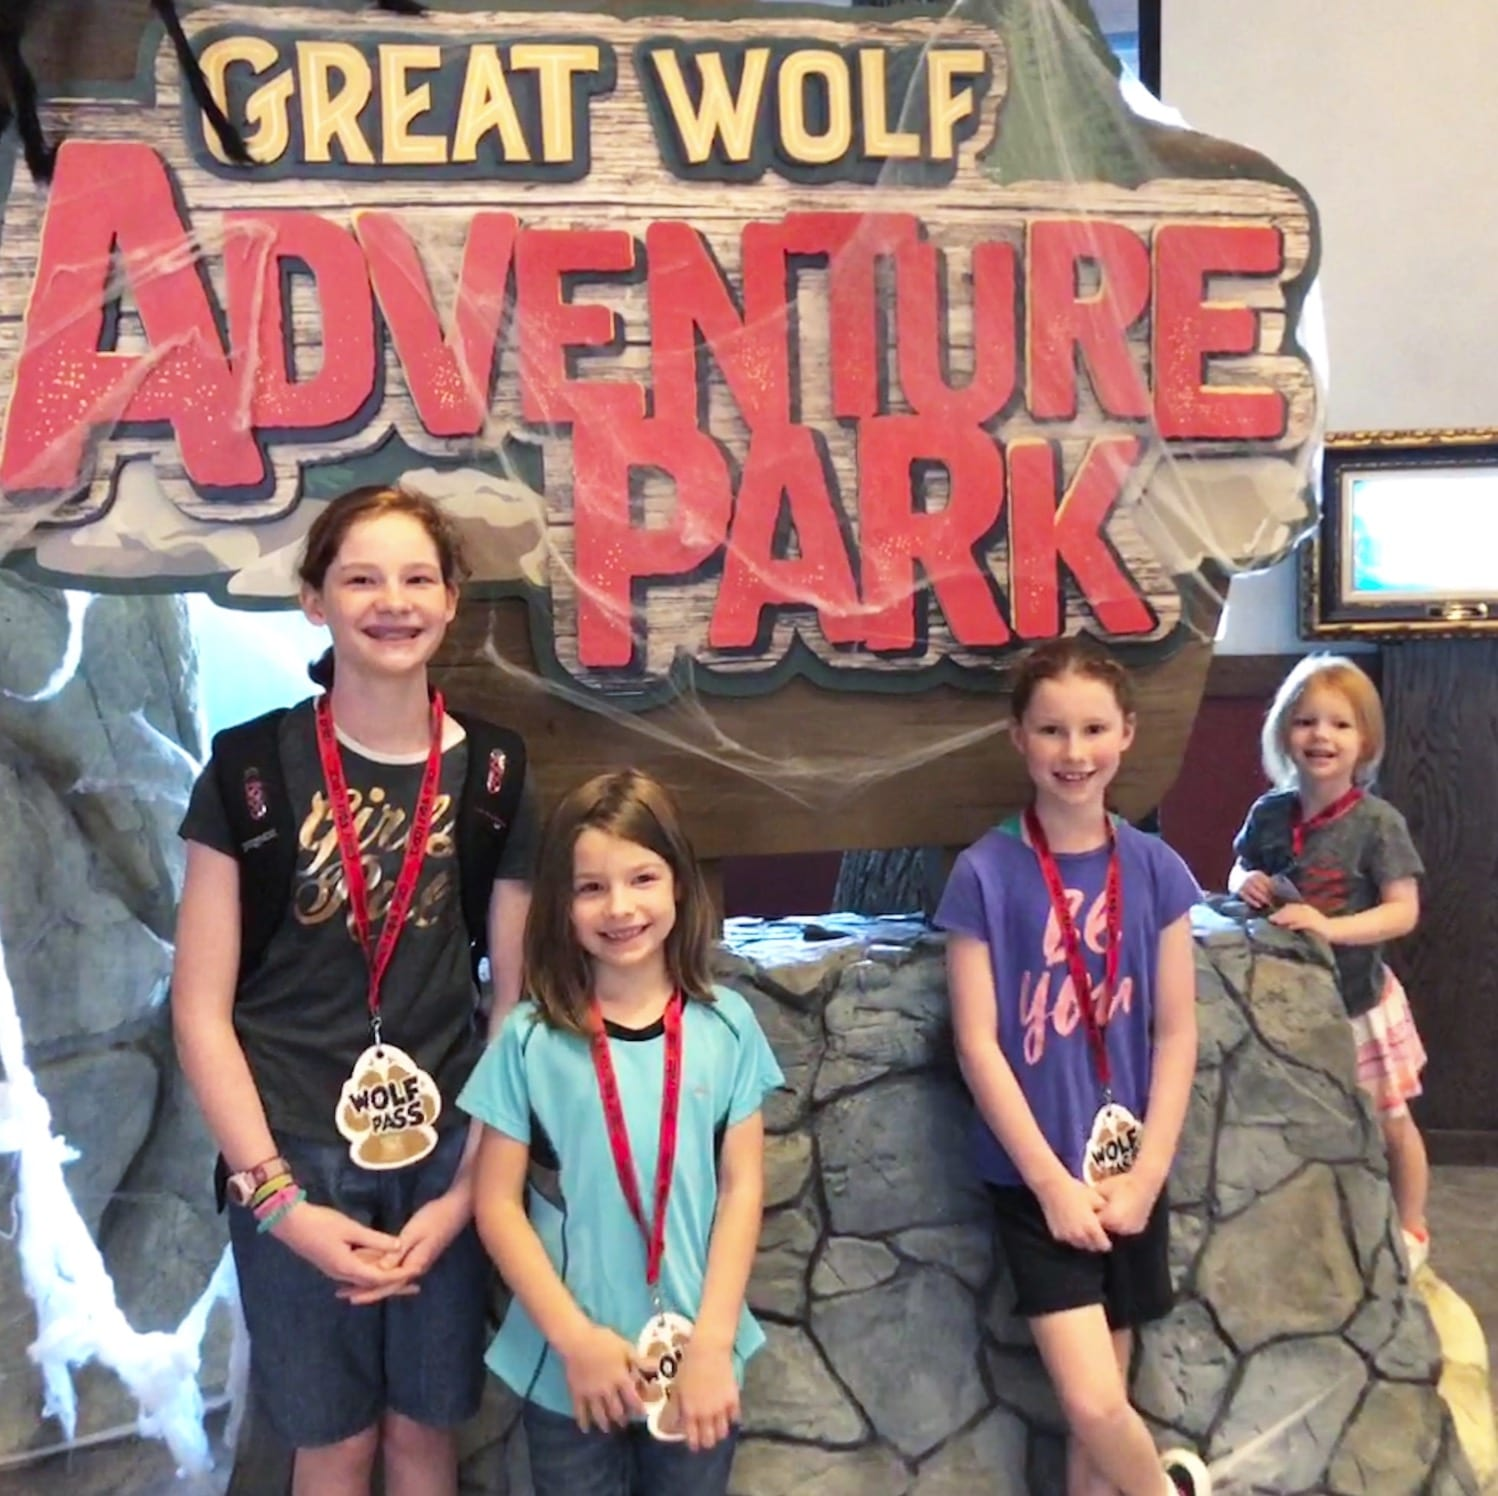 great wolf lodge adventure park